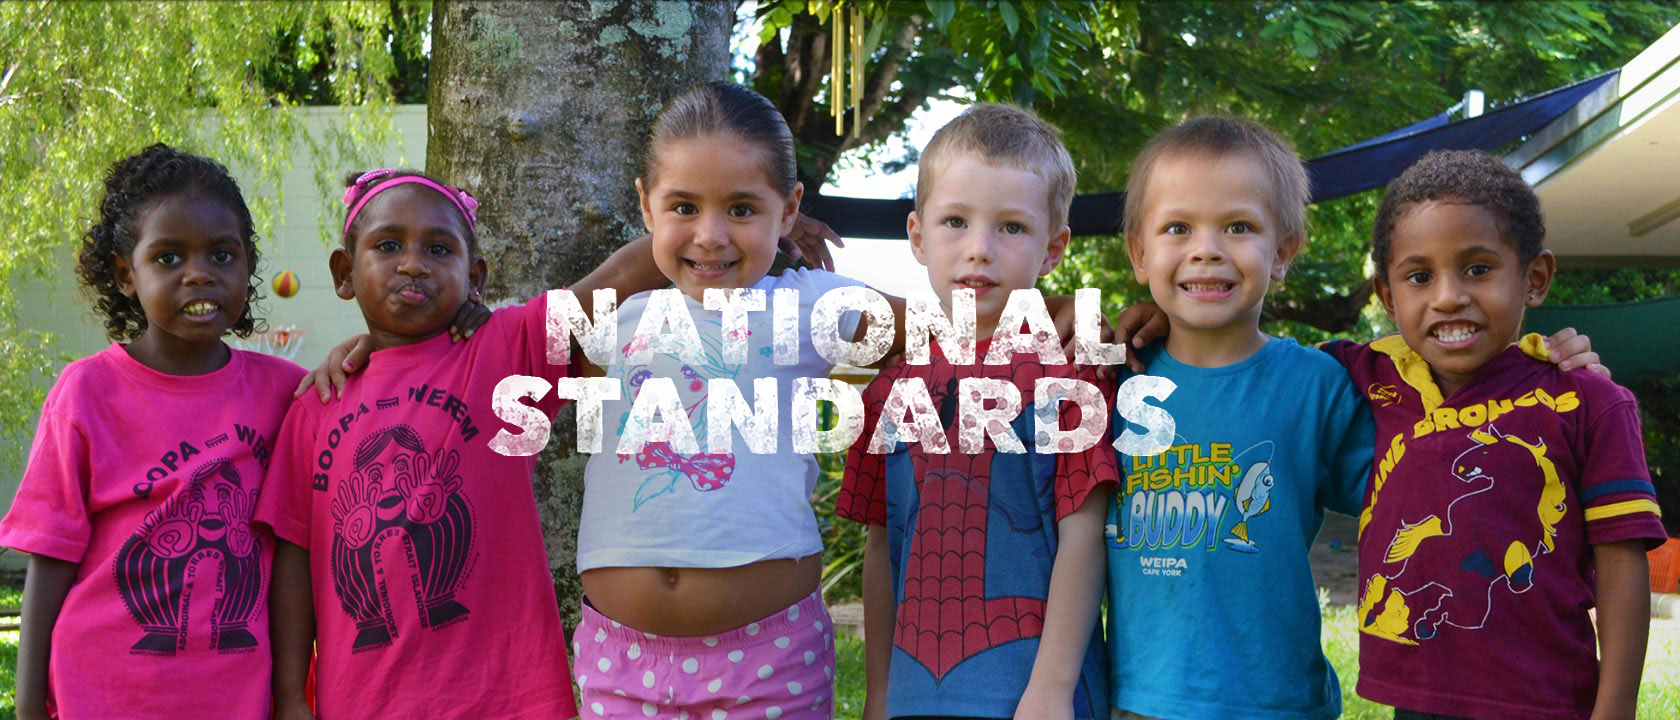 nationalstandards_header